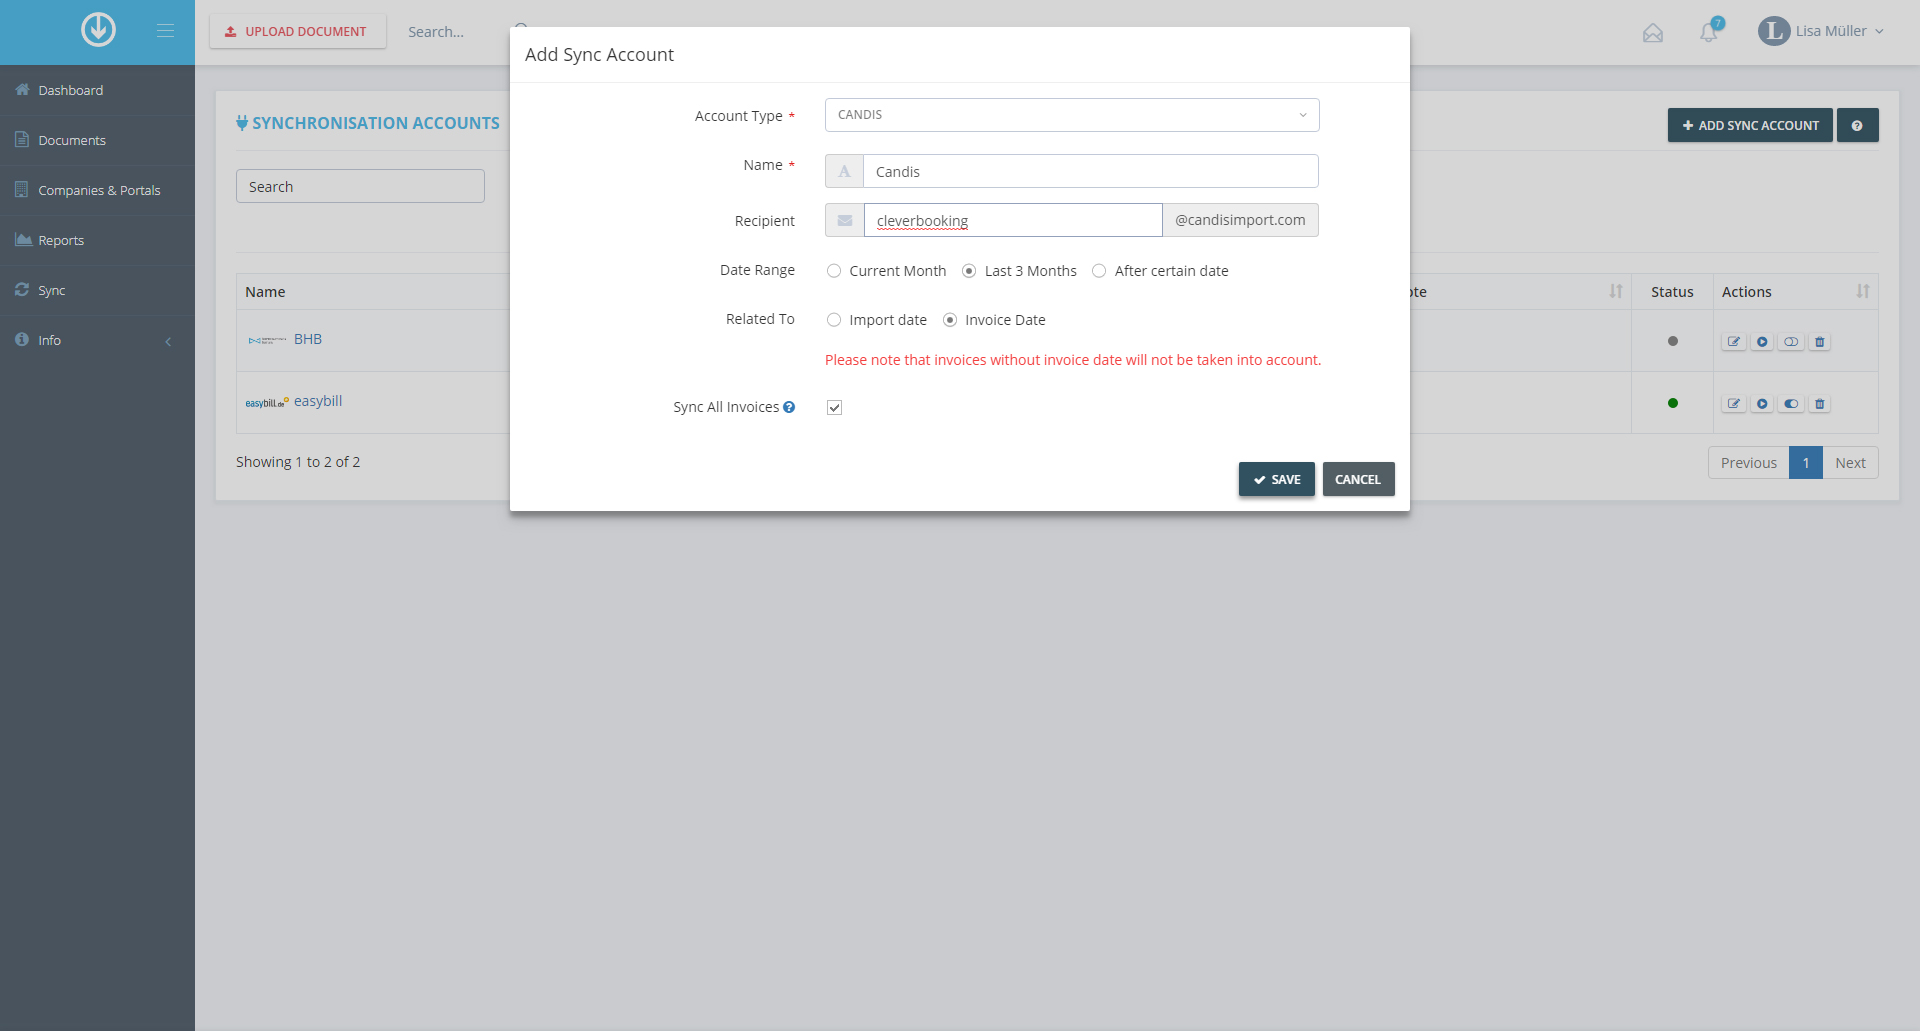 3. Add Synchronization Account